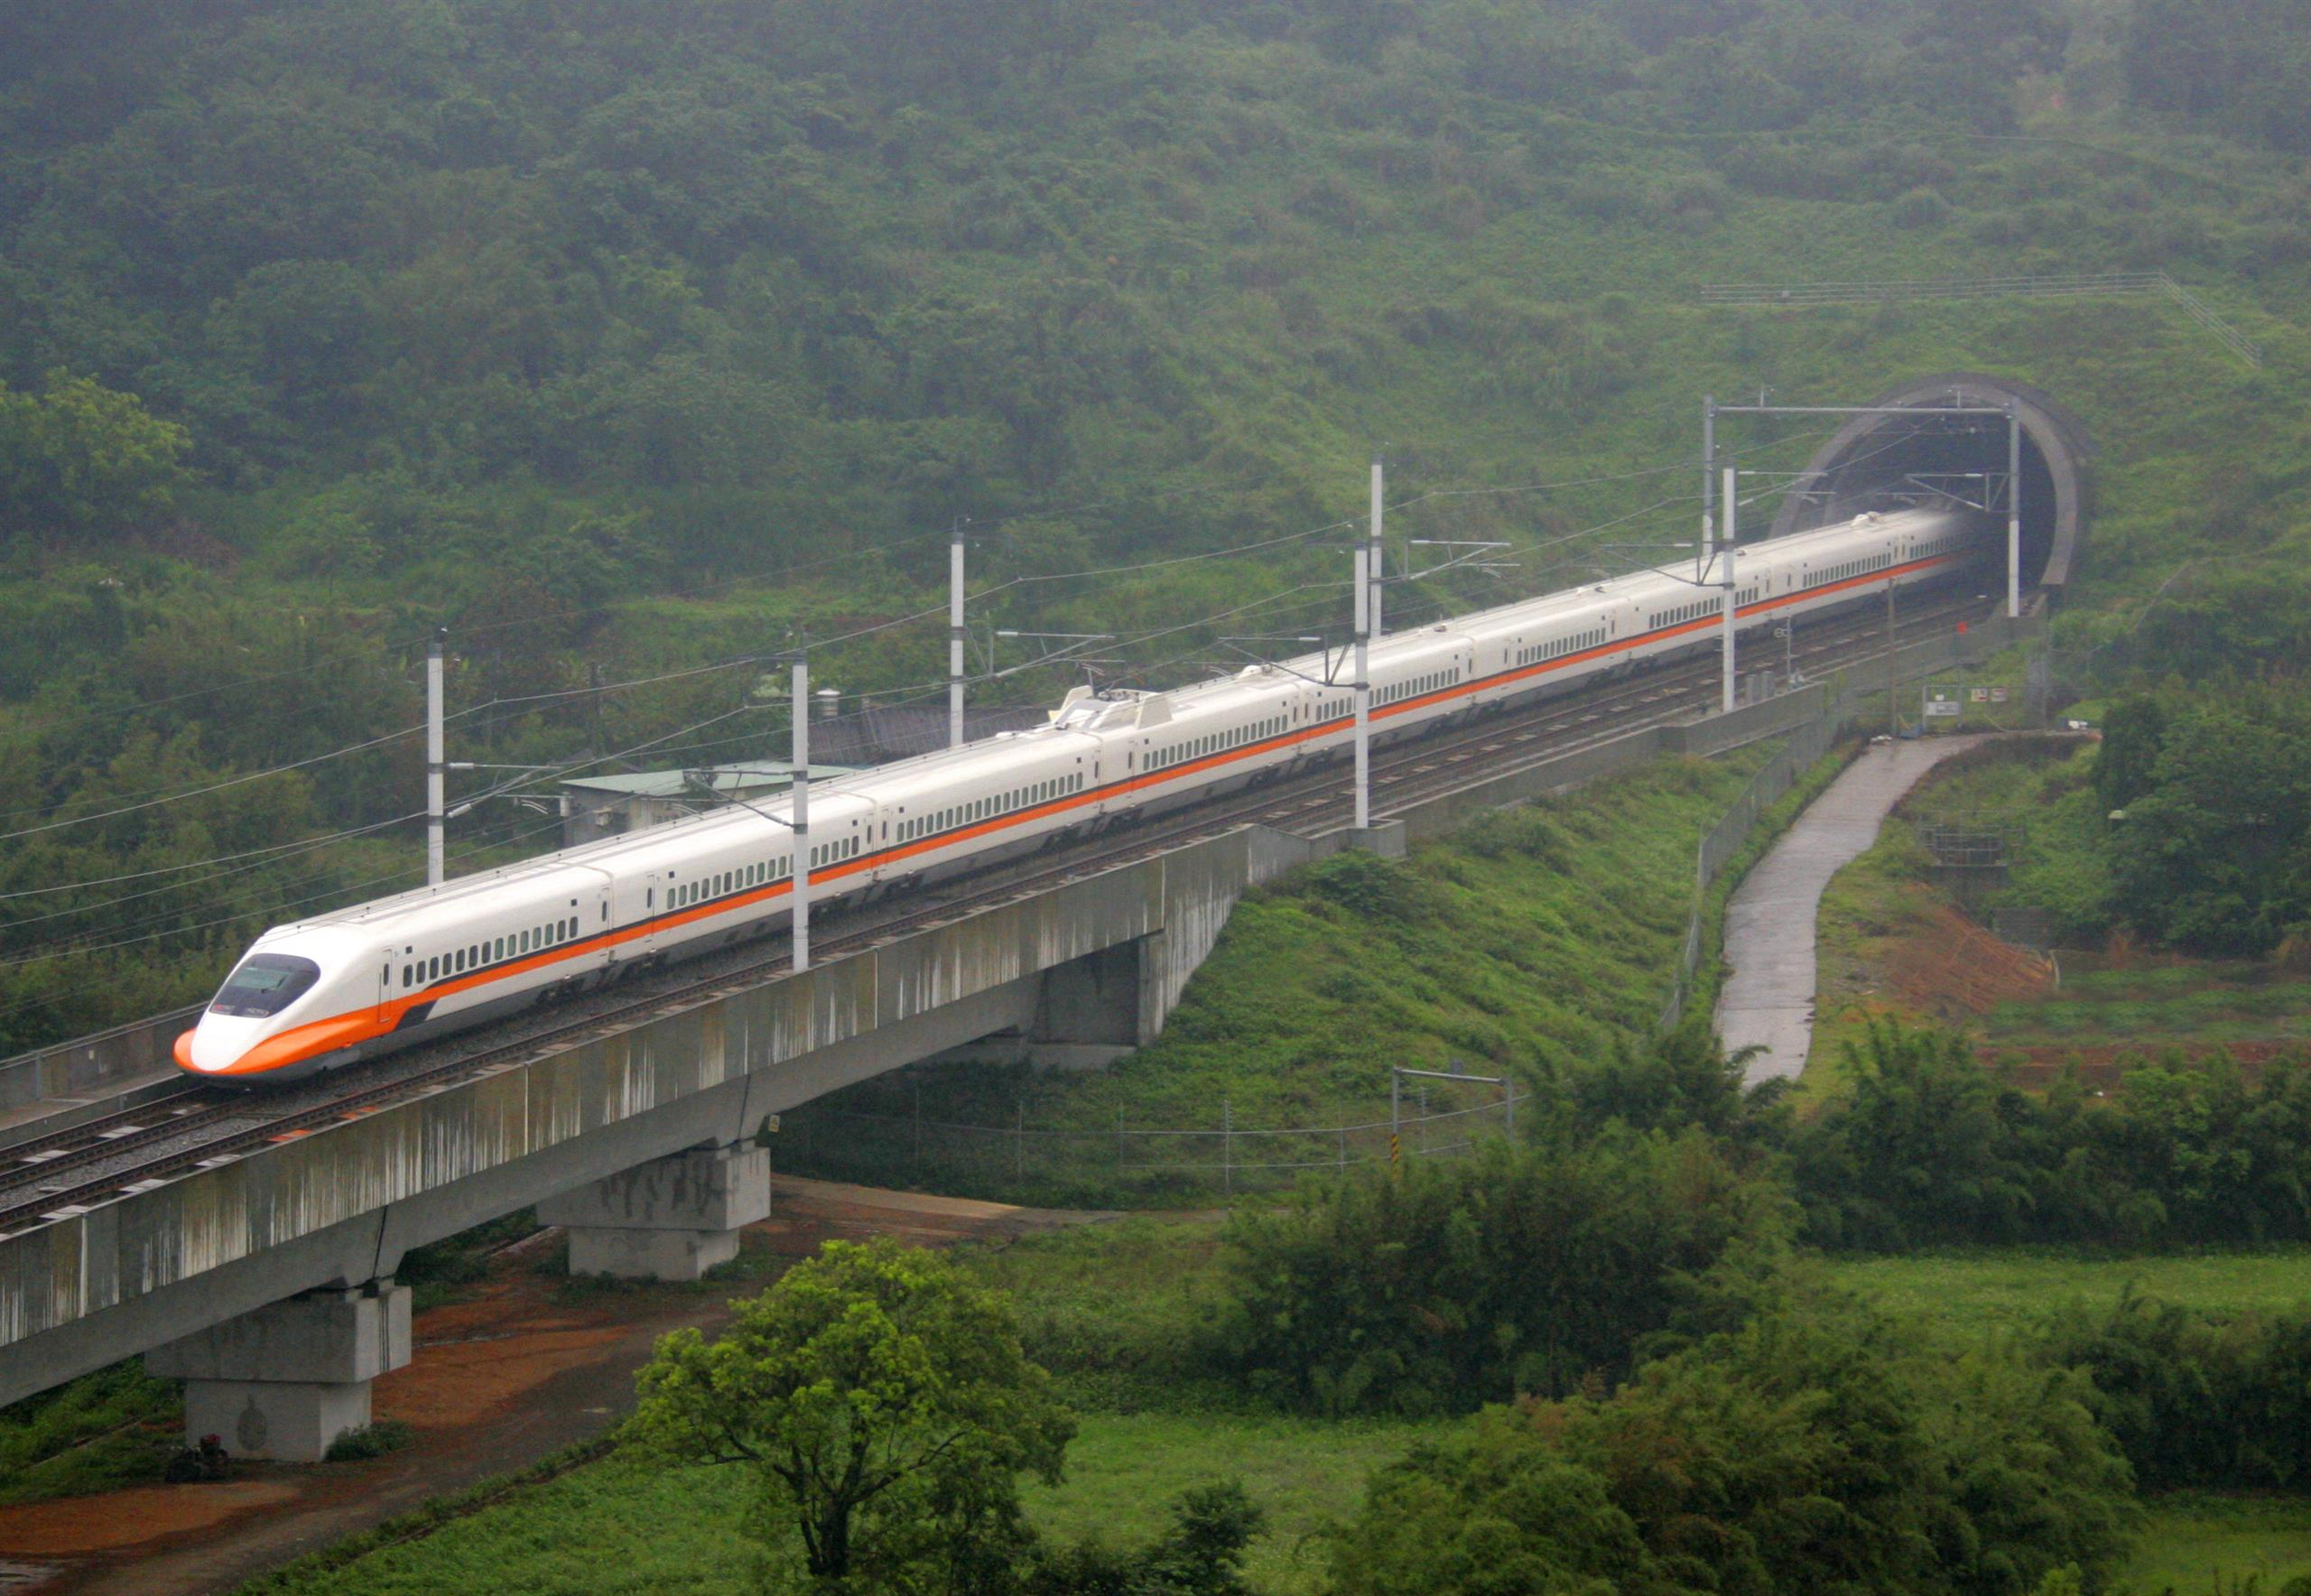 We led an international joint venture on a six-year contract as independent checking and site engineer on the Taiwan High Speed Rail project. At the time of development, it was among the world's largest privately funded transport schemes.